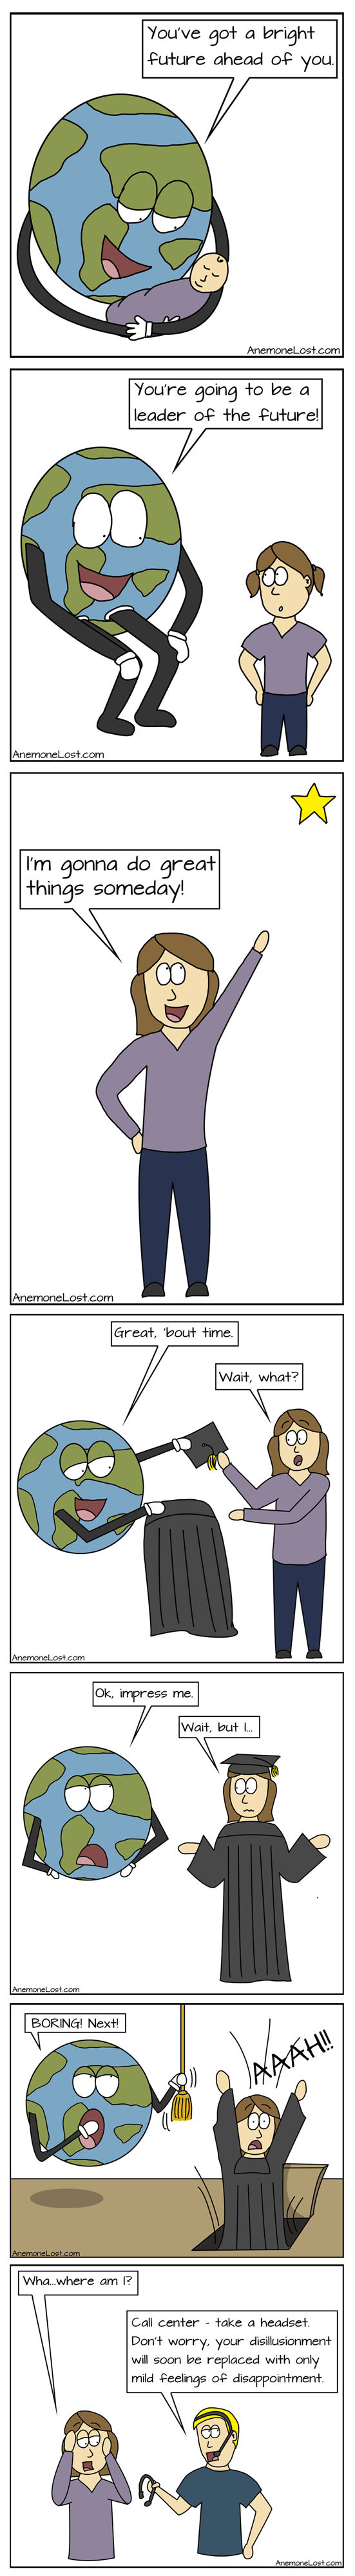 kids future adulthood web comics - 8754344704